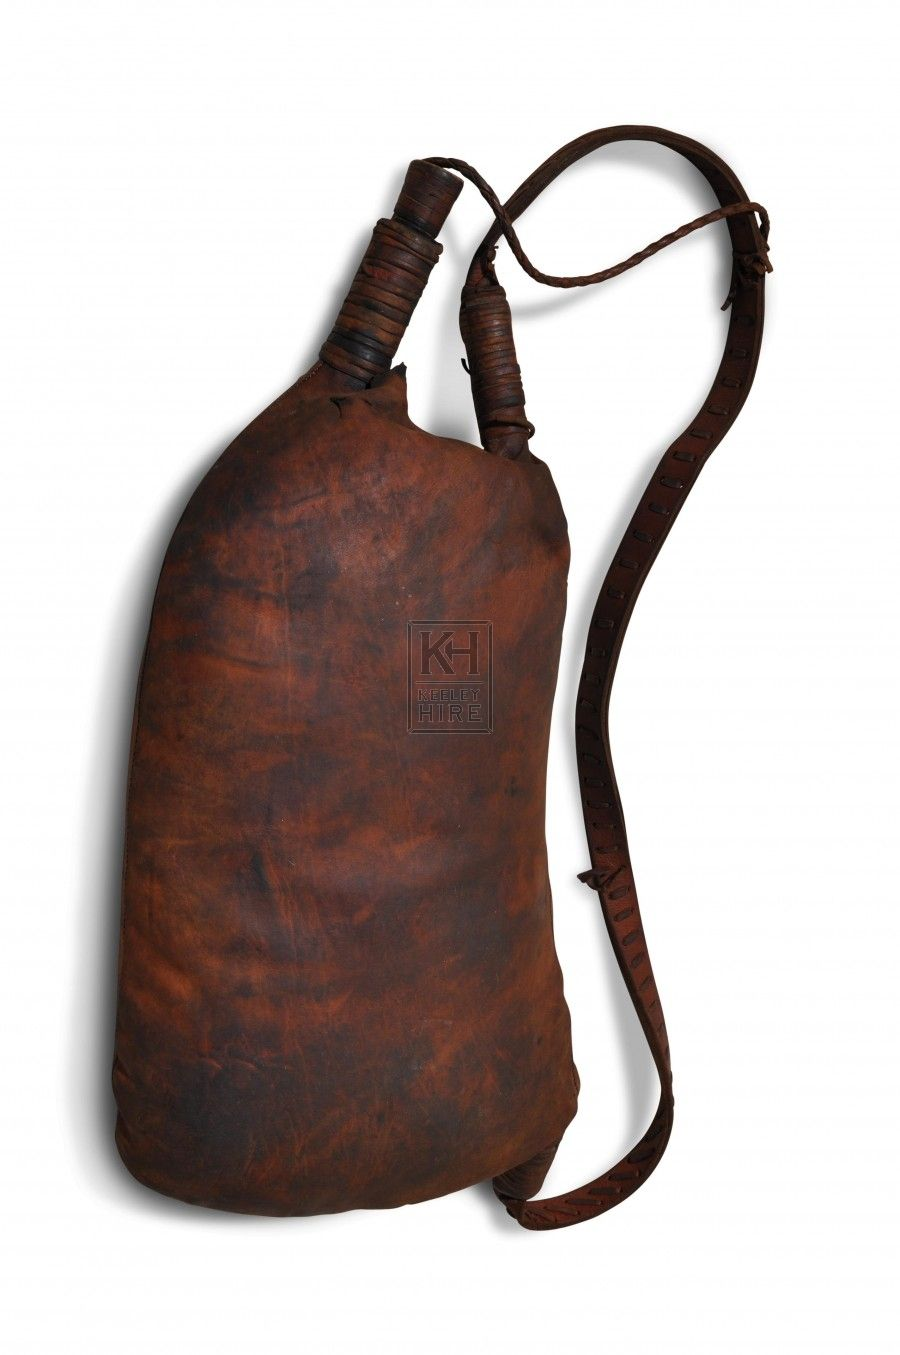 wineskin | Props » Wine Skins & Water Bottles » Wine Skin Bottle - Keeley Hire